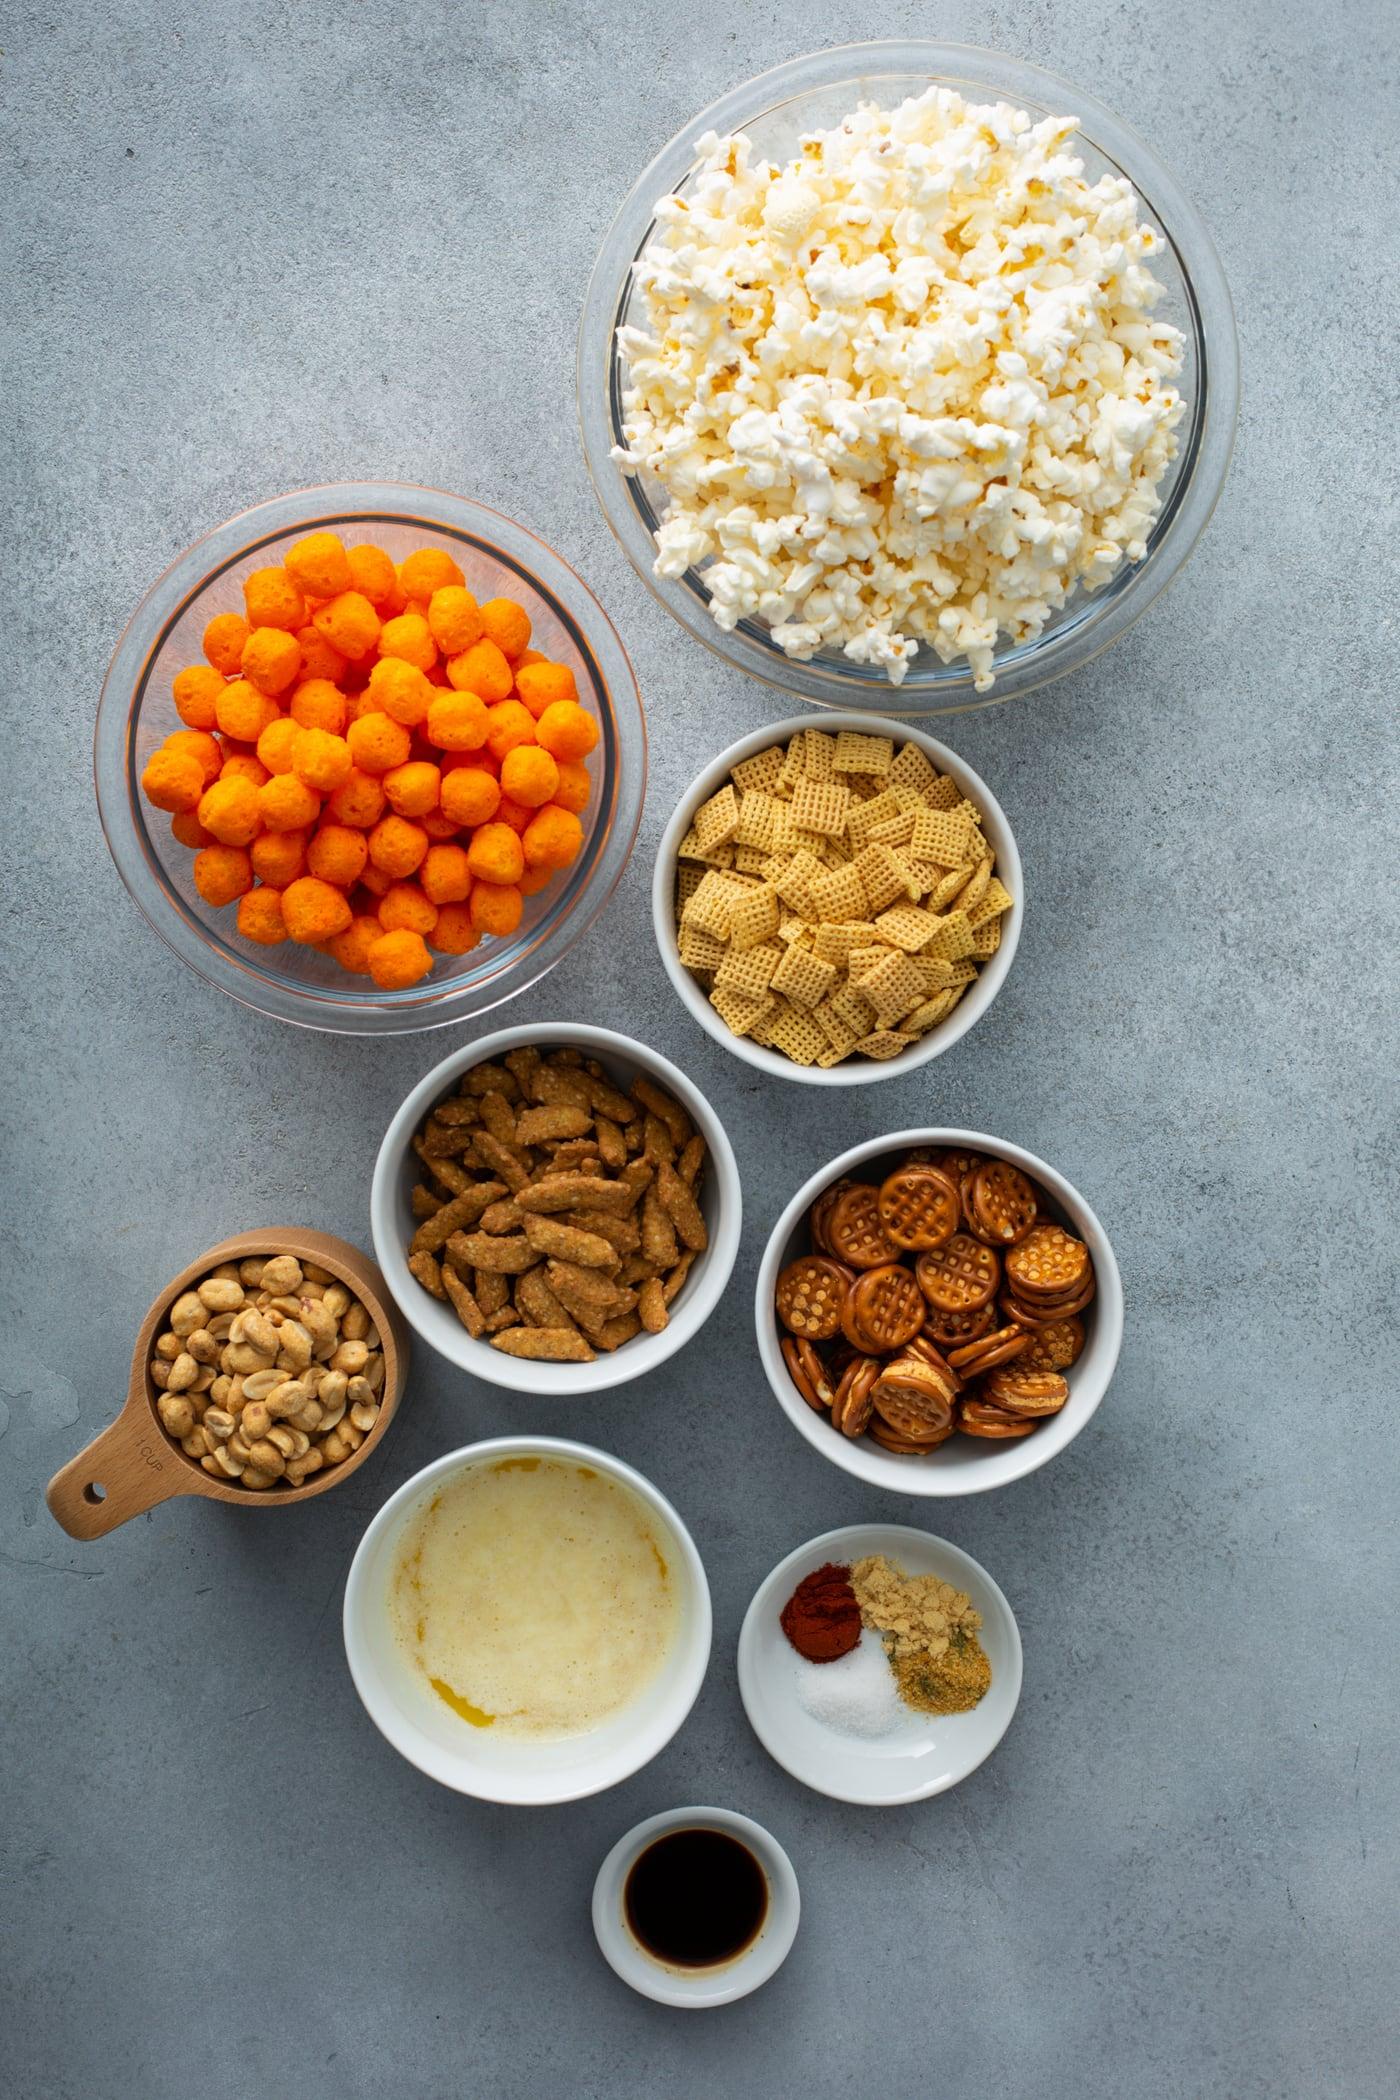 Containers of ingredients for a savory snack mix. There is popcorn, cheese balls, pretzels, sesame sticks, peanuts and spices.